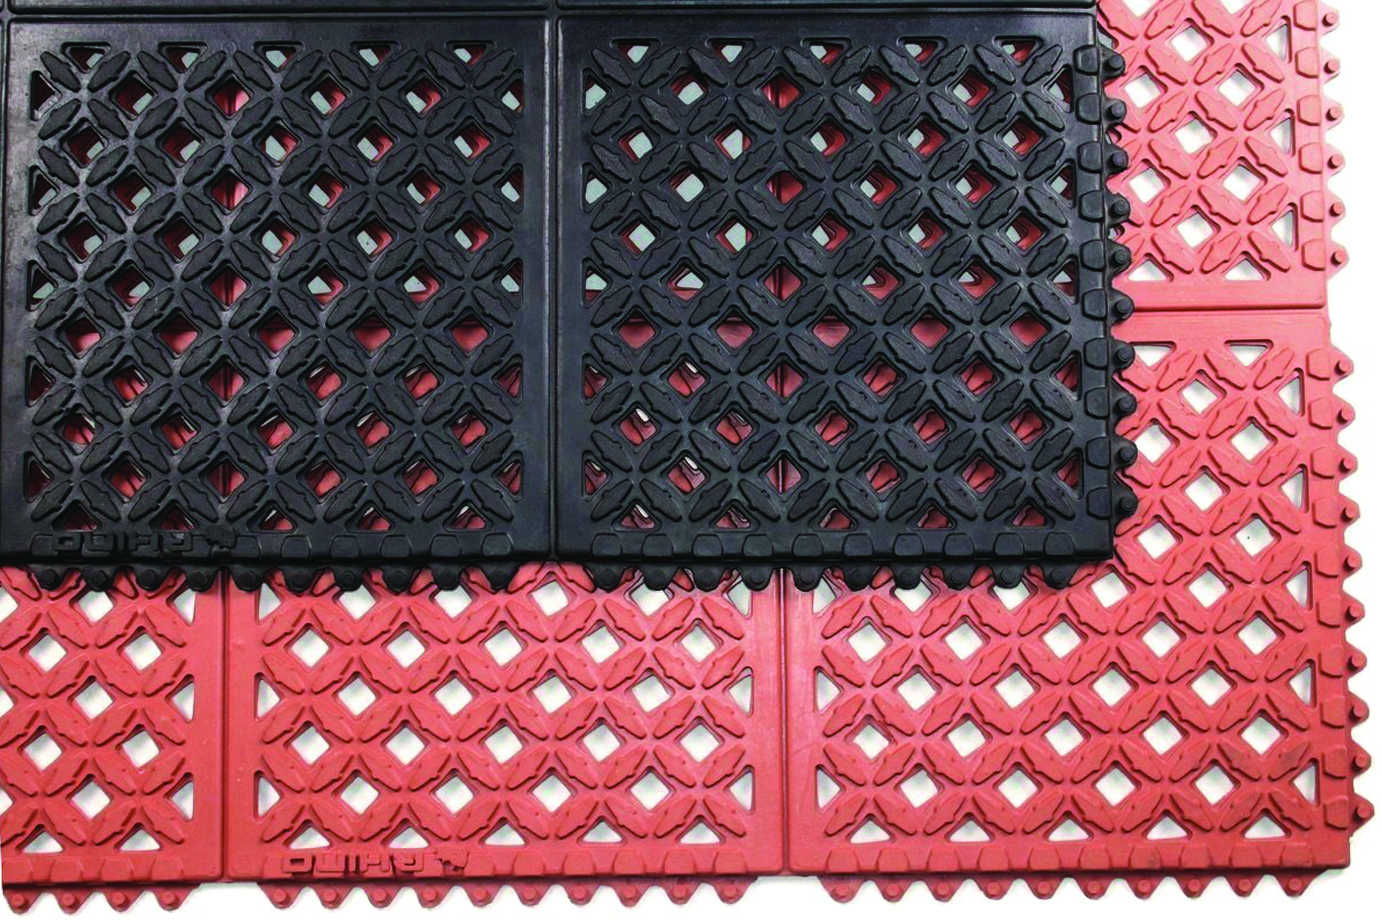 sale non nature holes rubber water mats floor drain wet absorbent drainage mat door